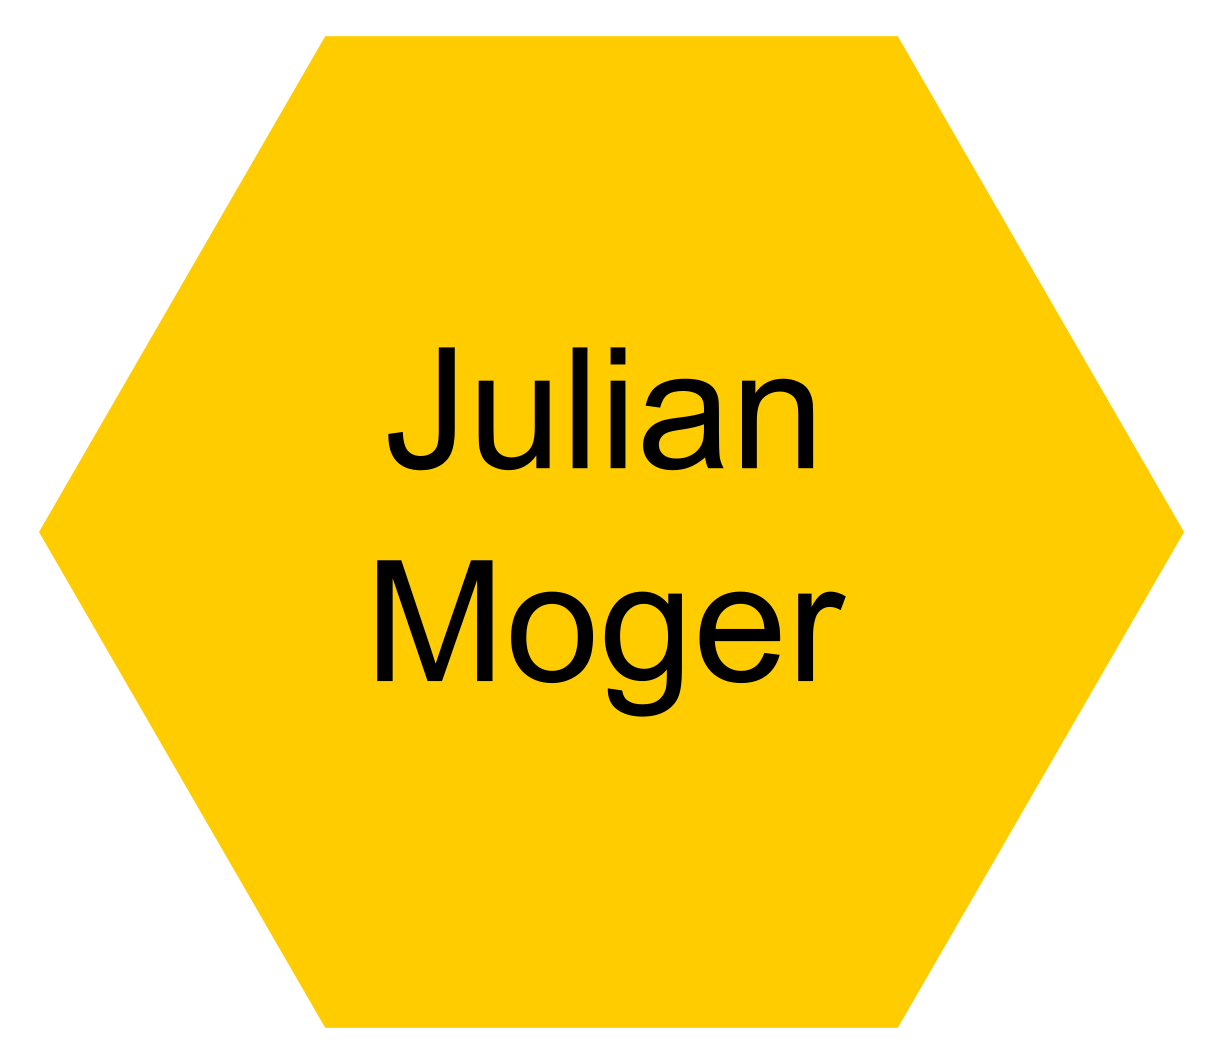 Prof. Julian Moger (University of Exeter: Principal Investigator) - Click this icon to reveal their contact details.